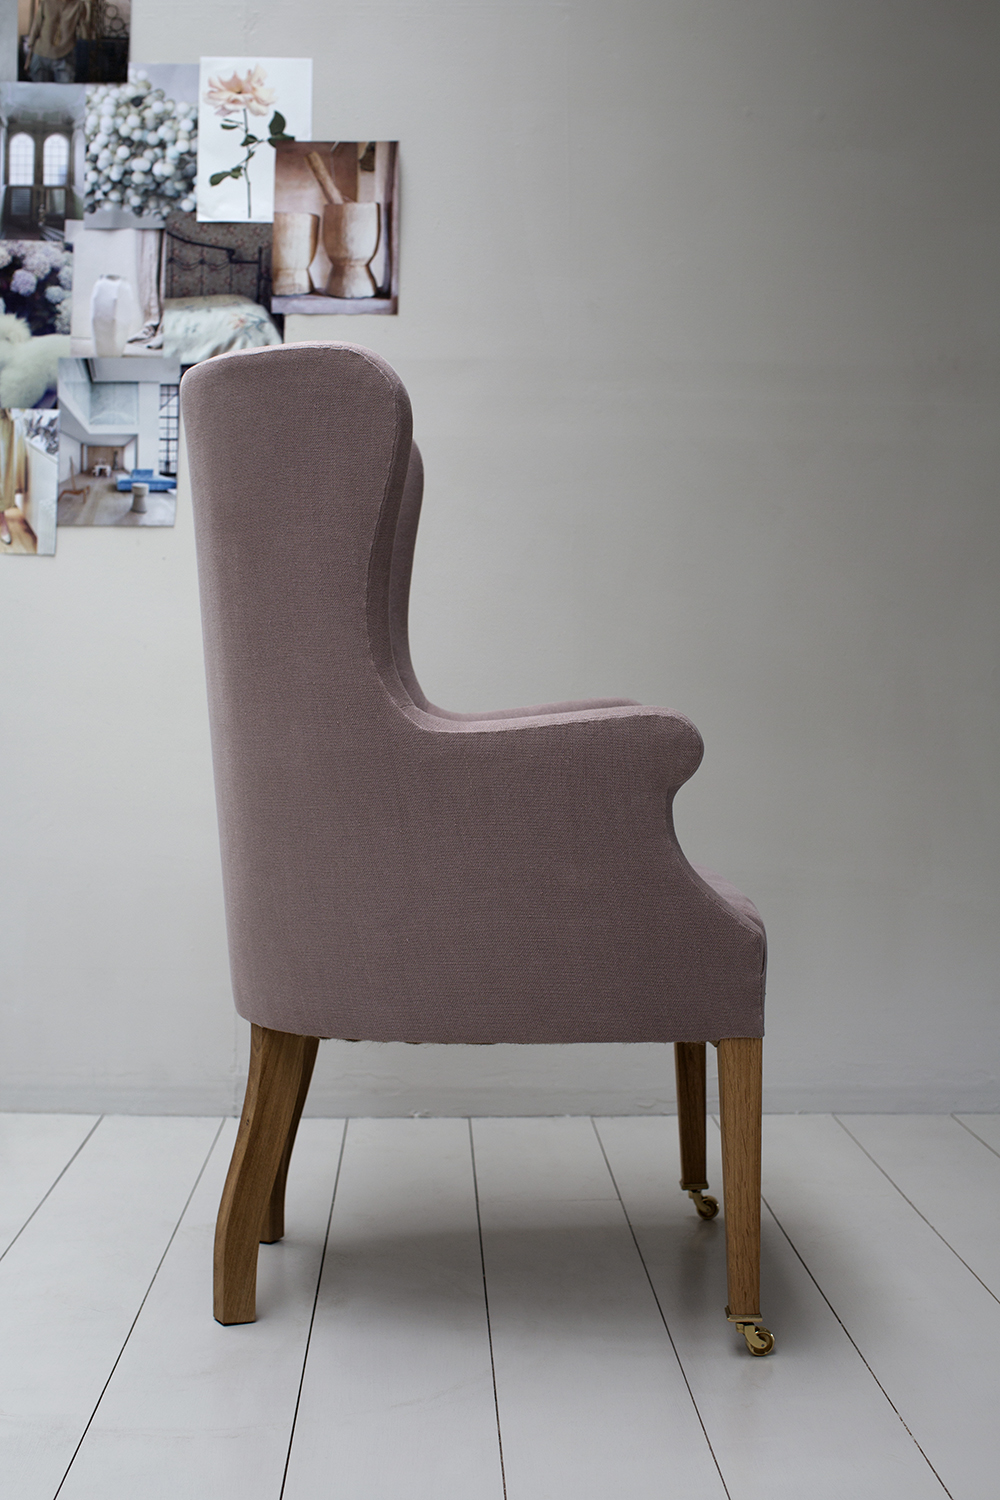 THE TALL MAMA CHAIR